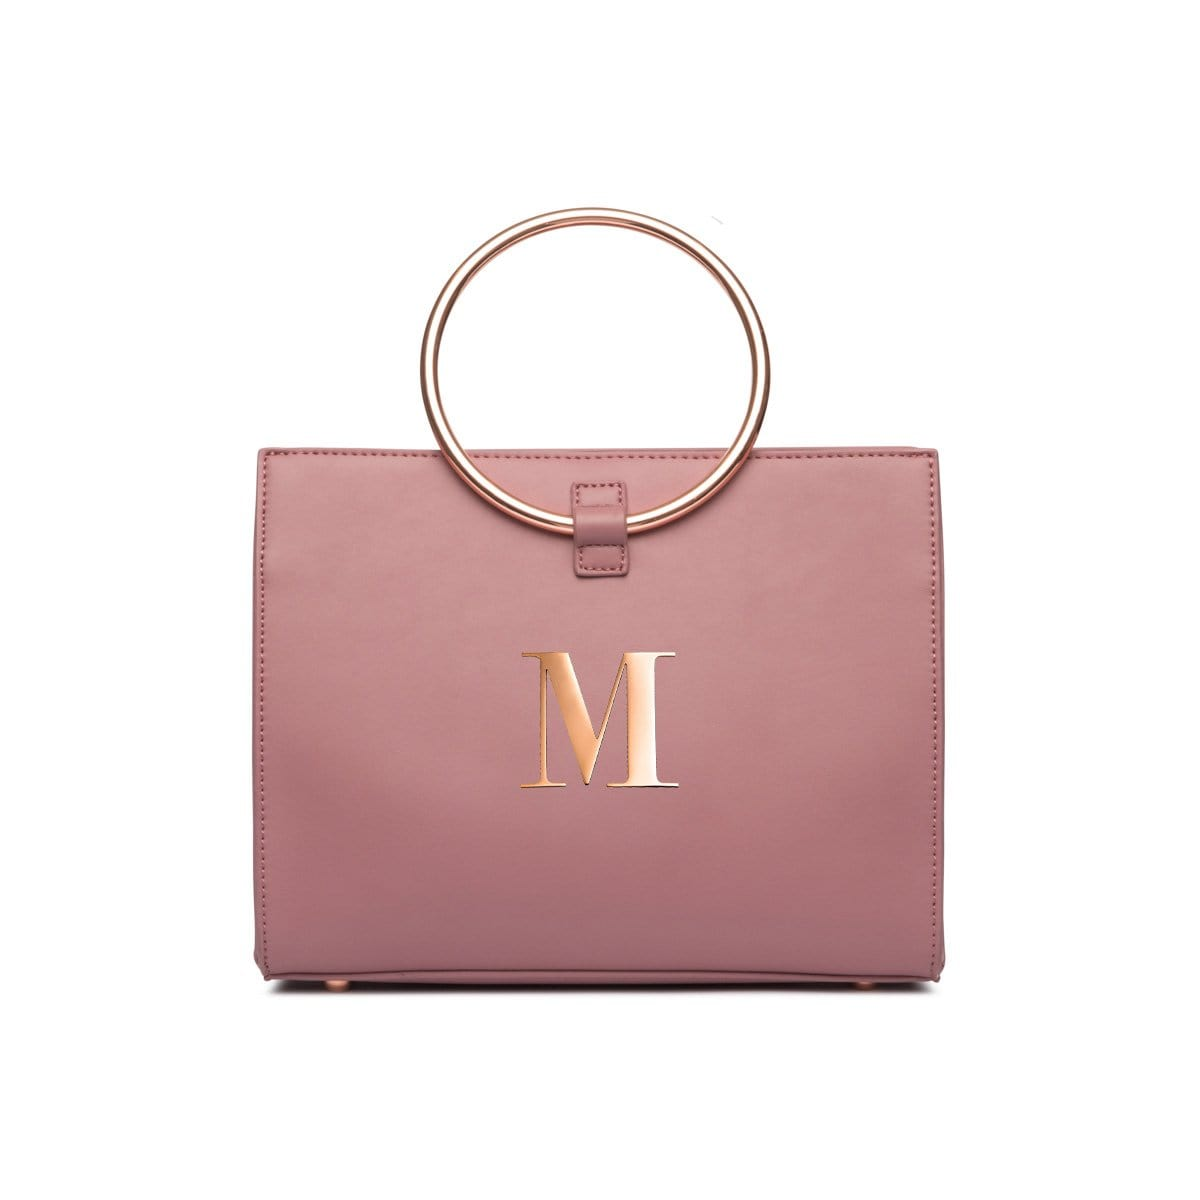 Moda Top Handle Bag (Mauve Pink/Rose Gold)